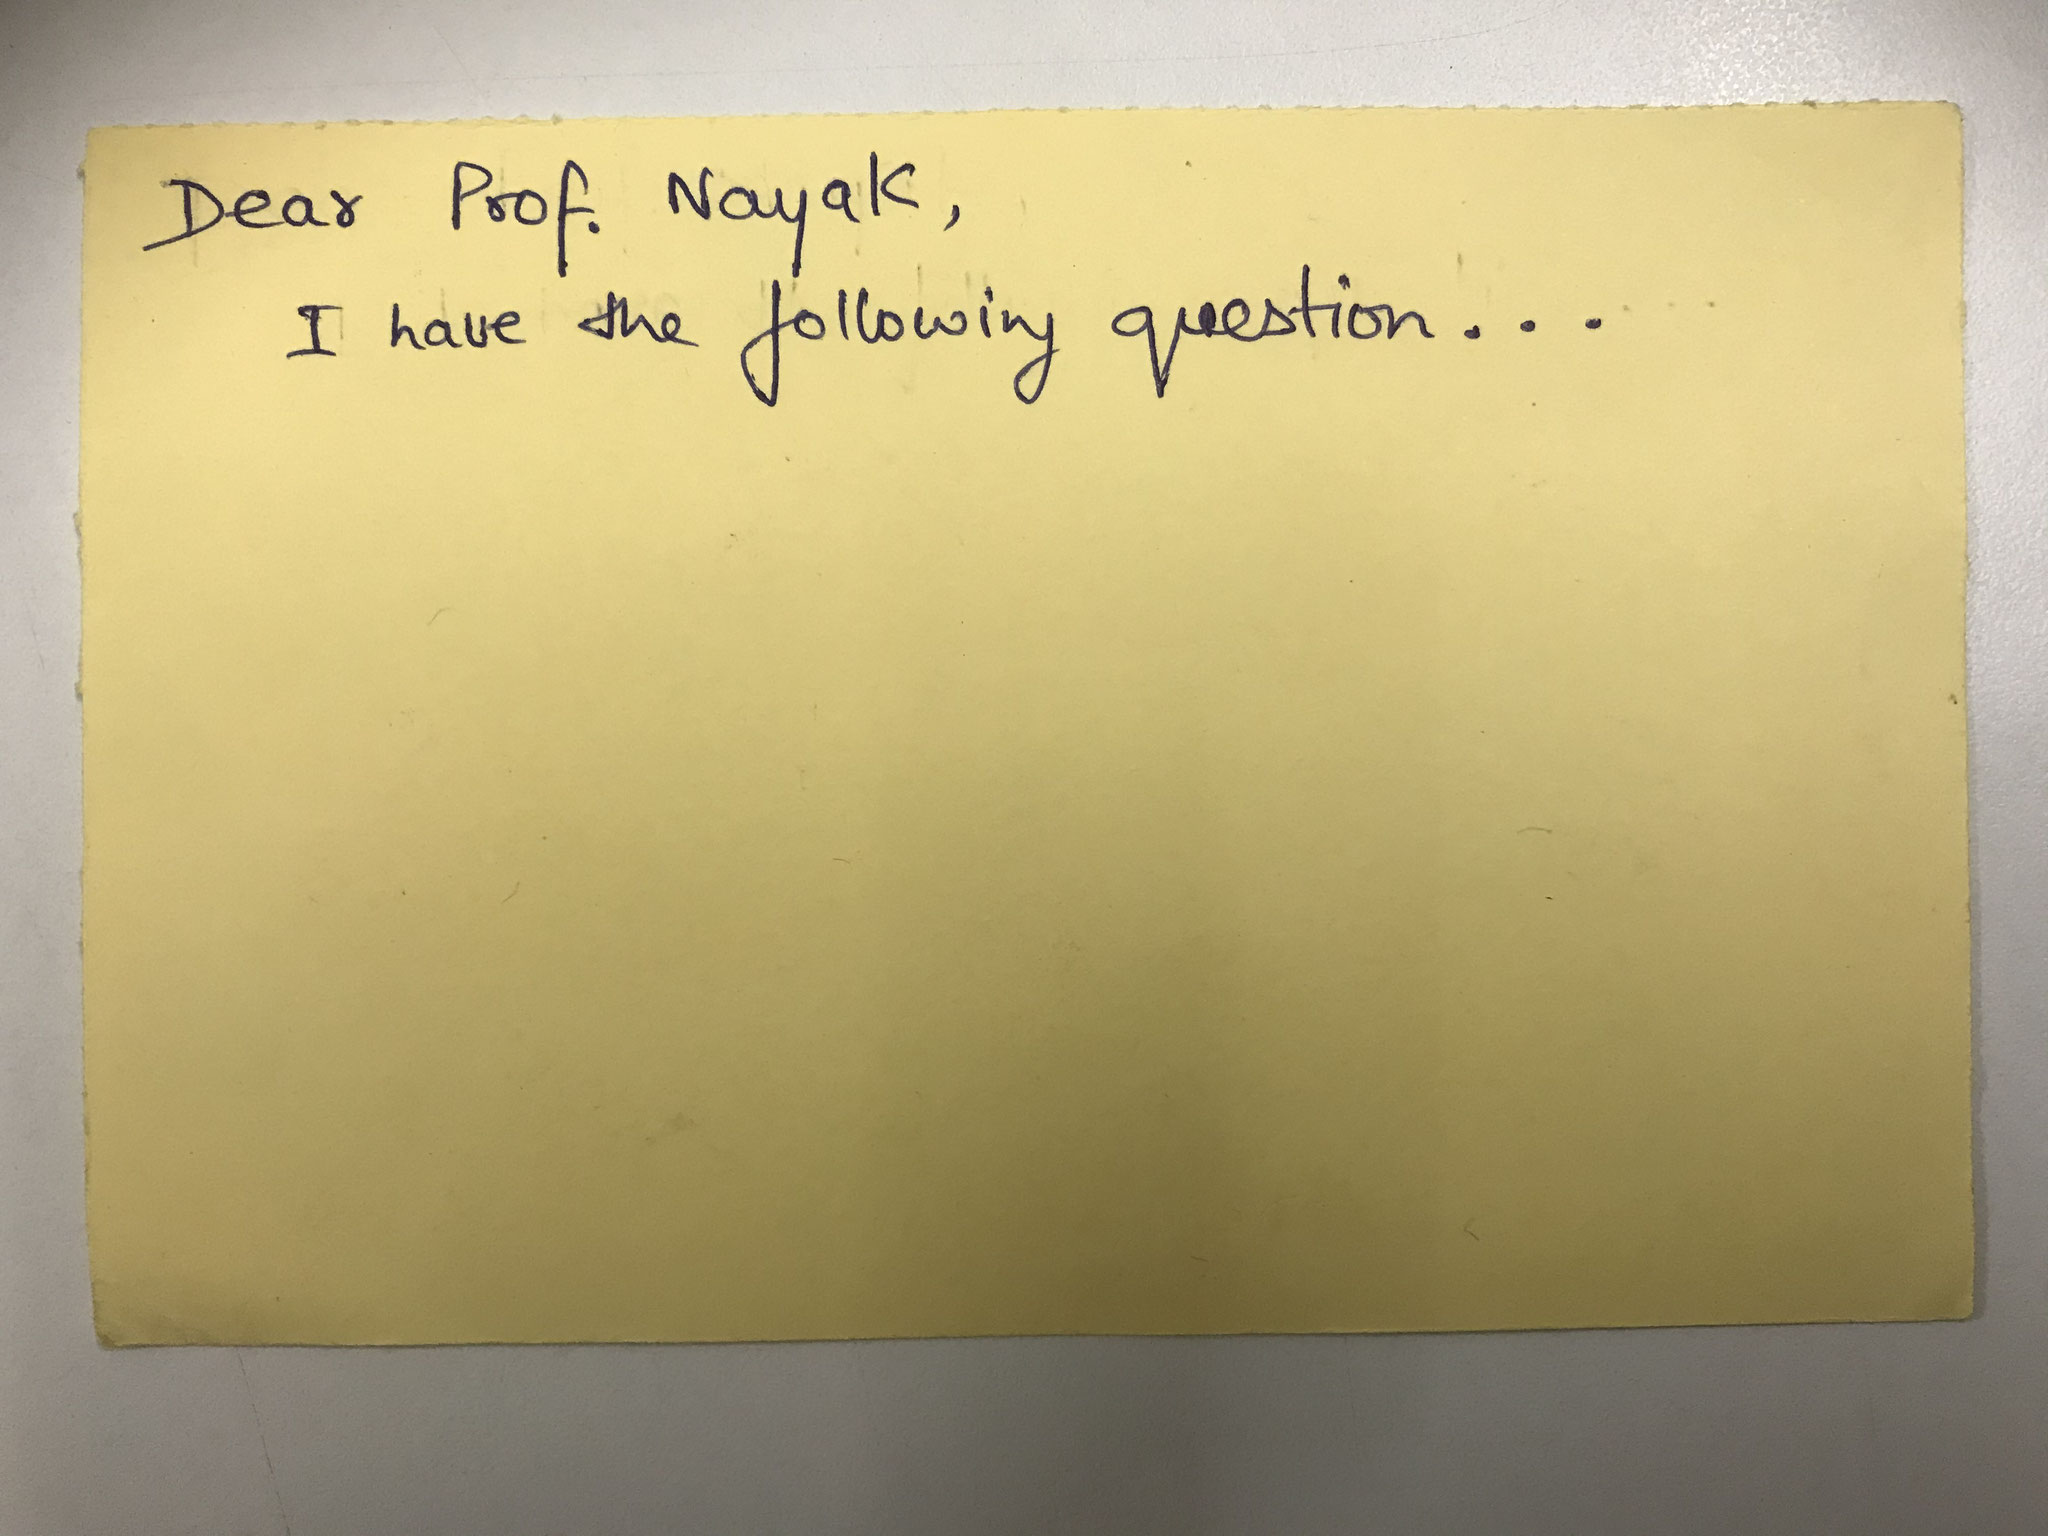 Prof Nayak, i have a question . . .